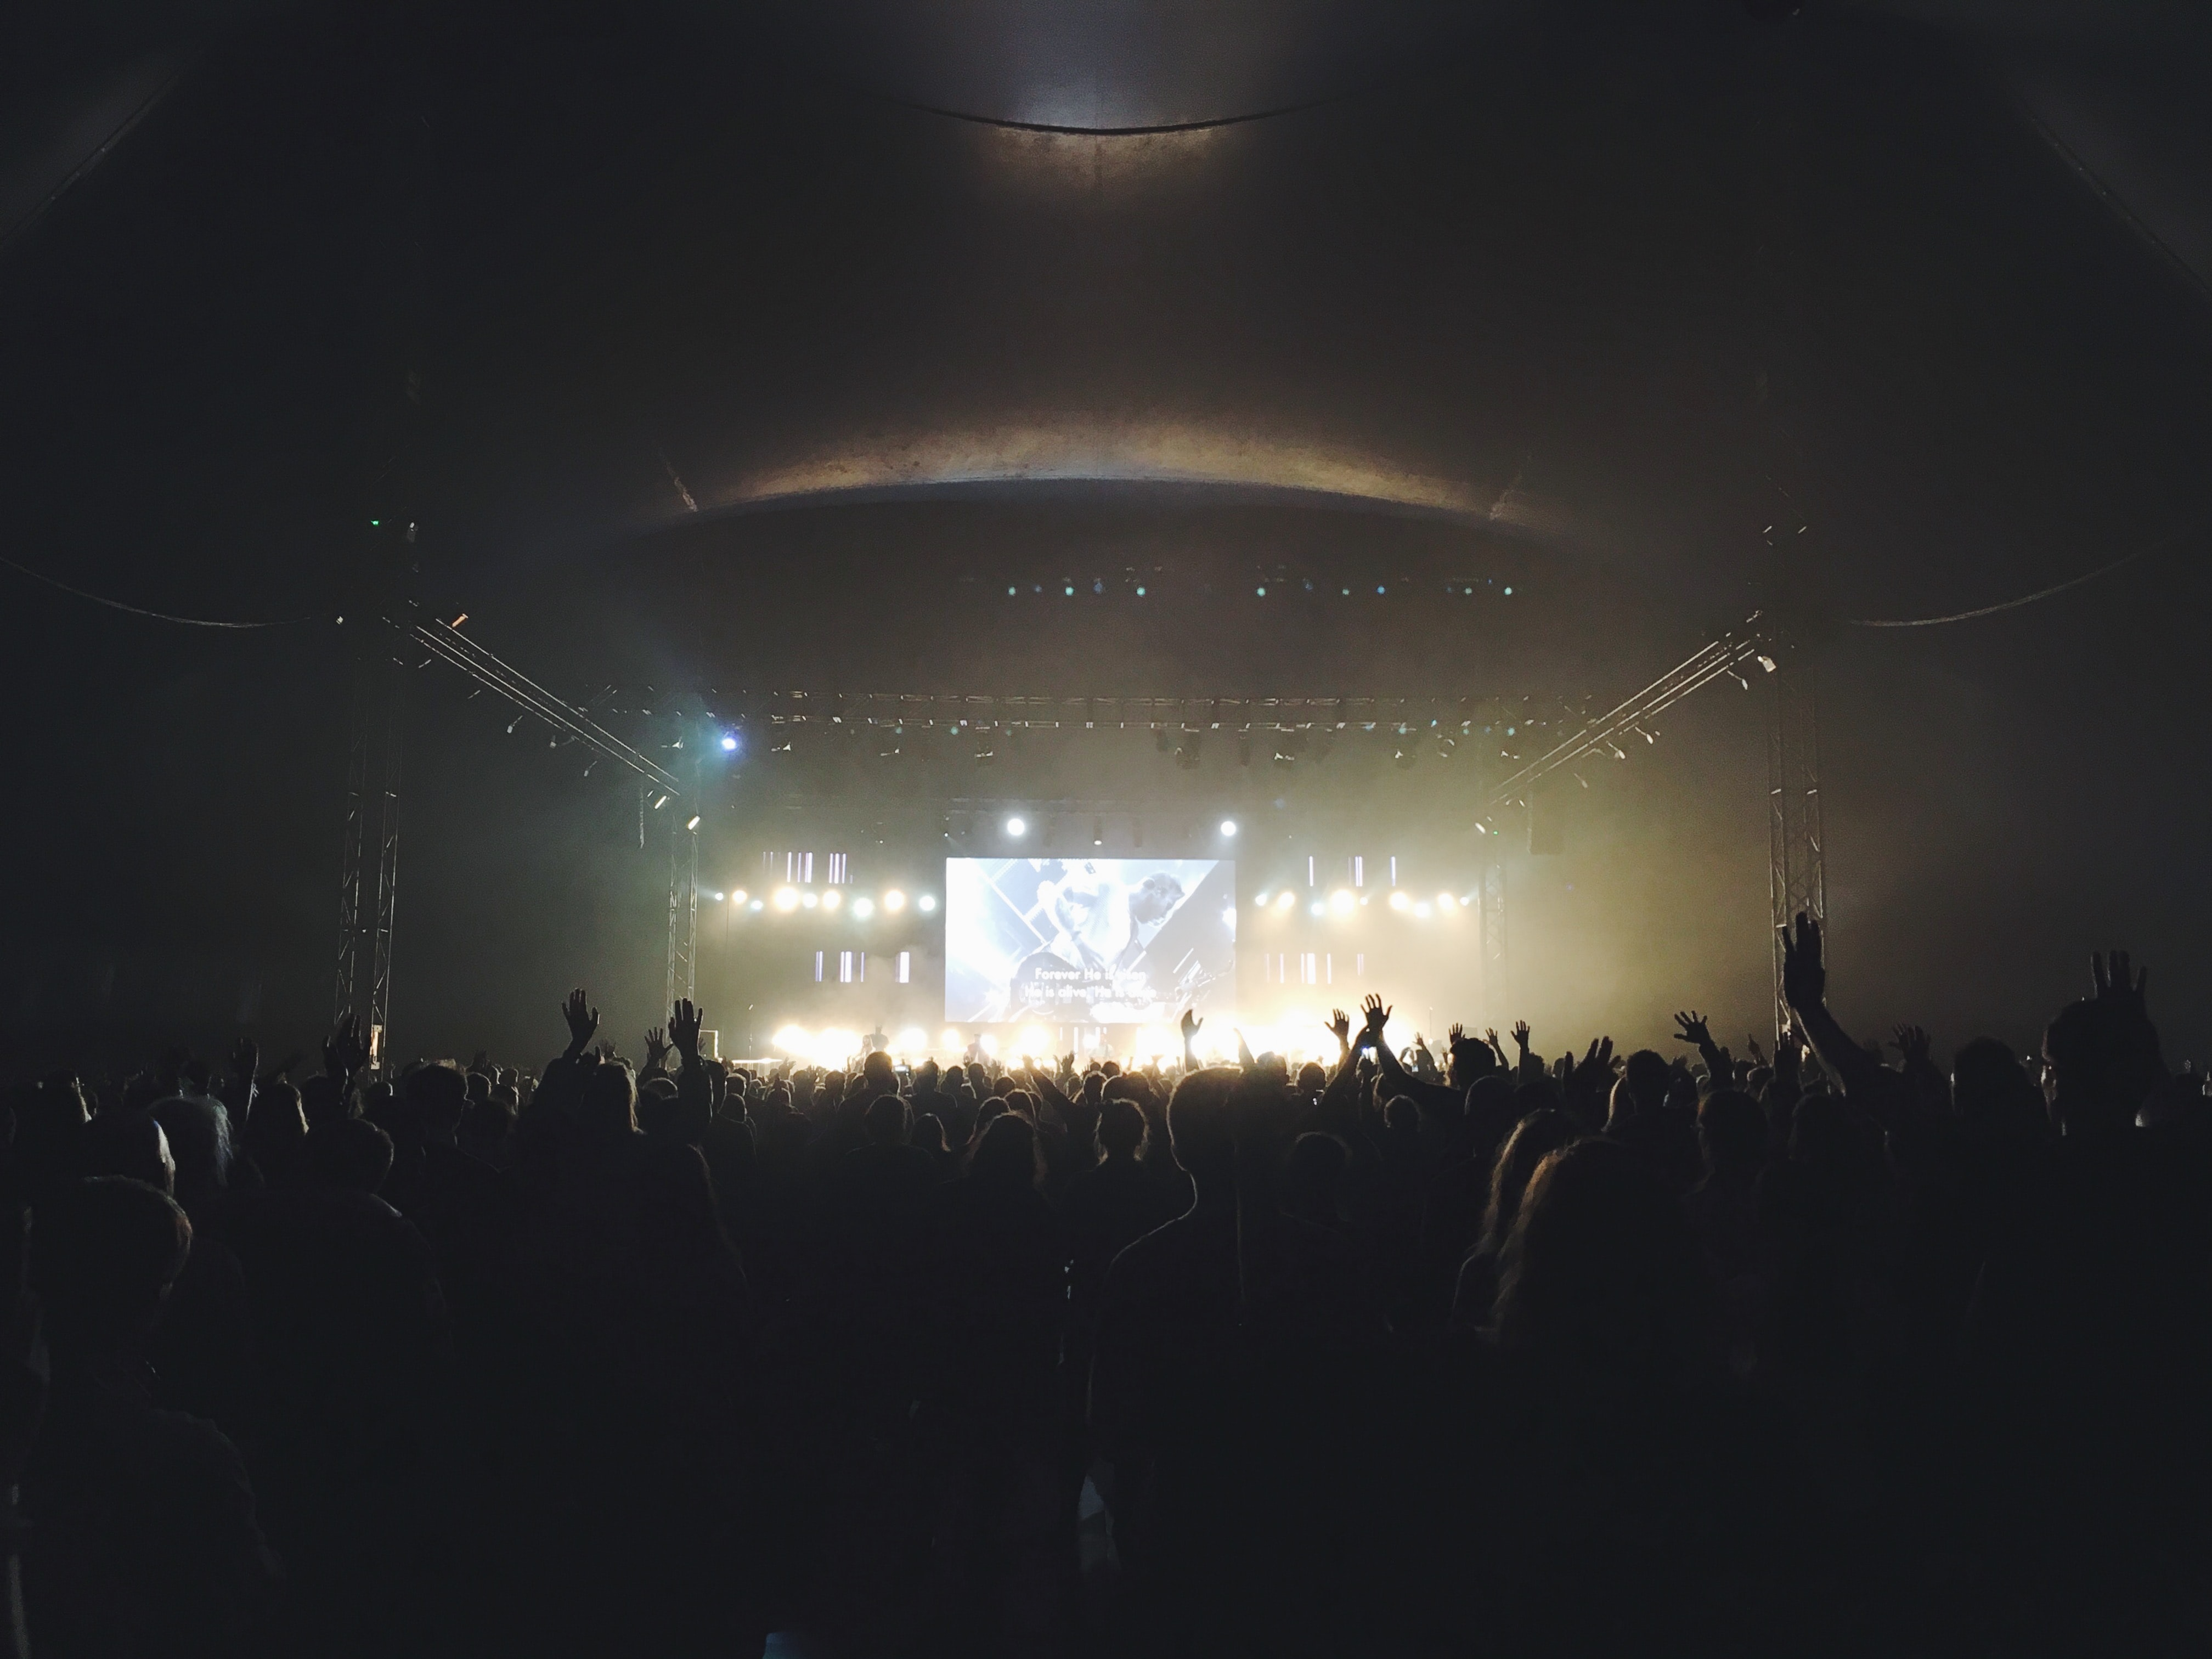 A shot from the back of a large concert audience with a large screen above the performing band